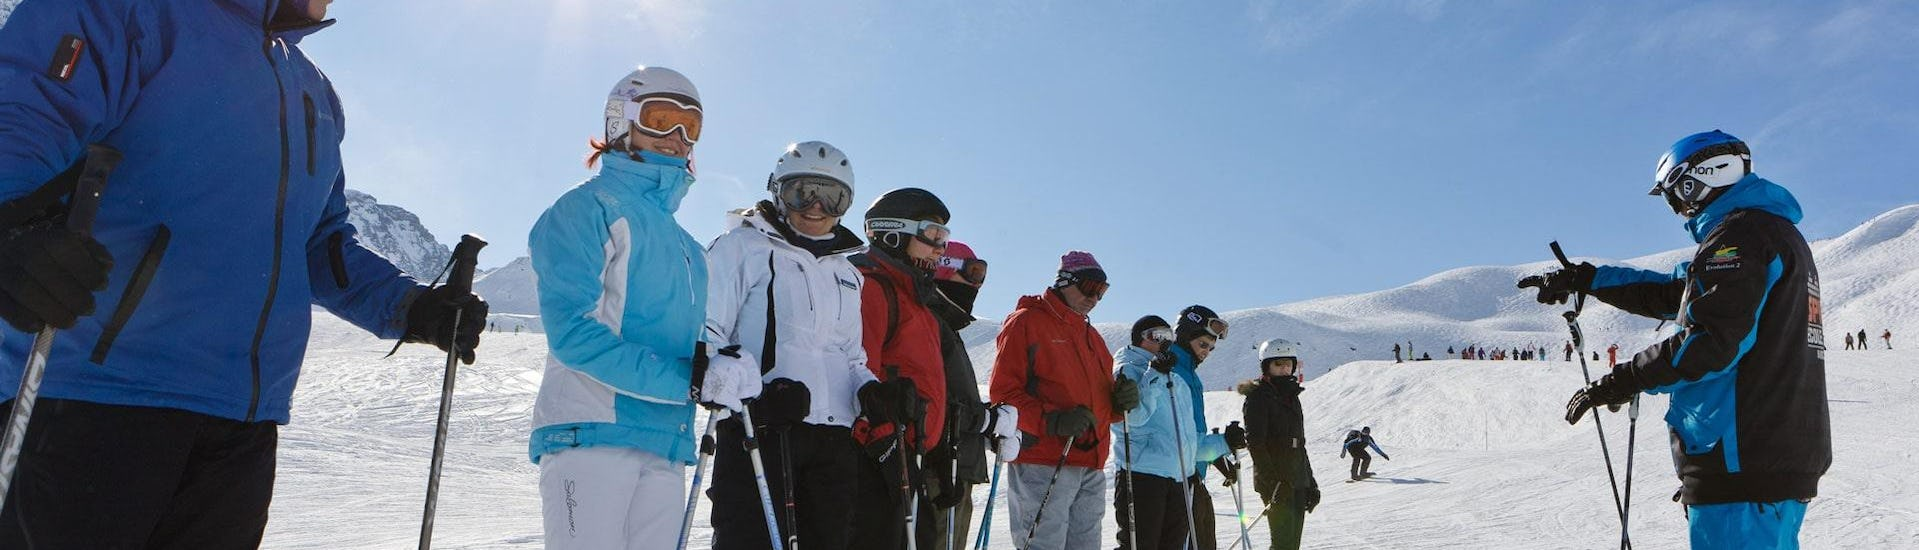 Ski Lessons for Teens (13-17 years) - High Season - Arc 1950